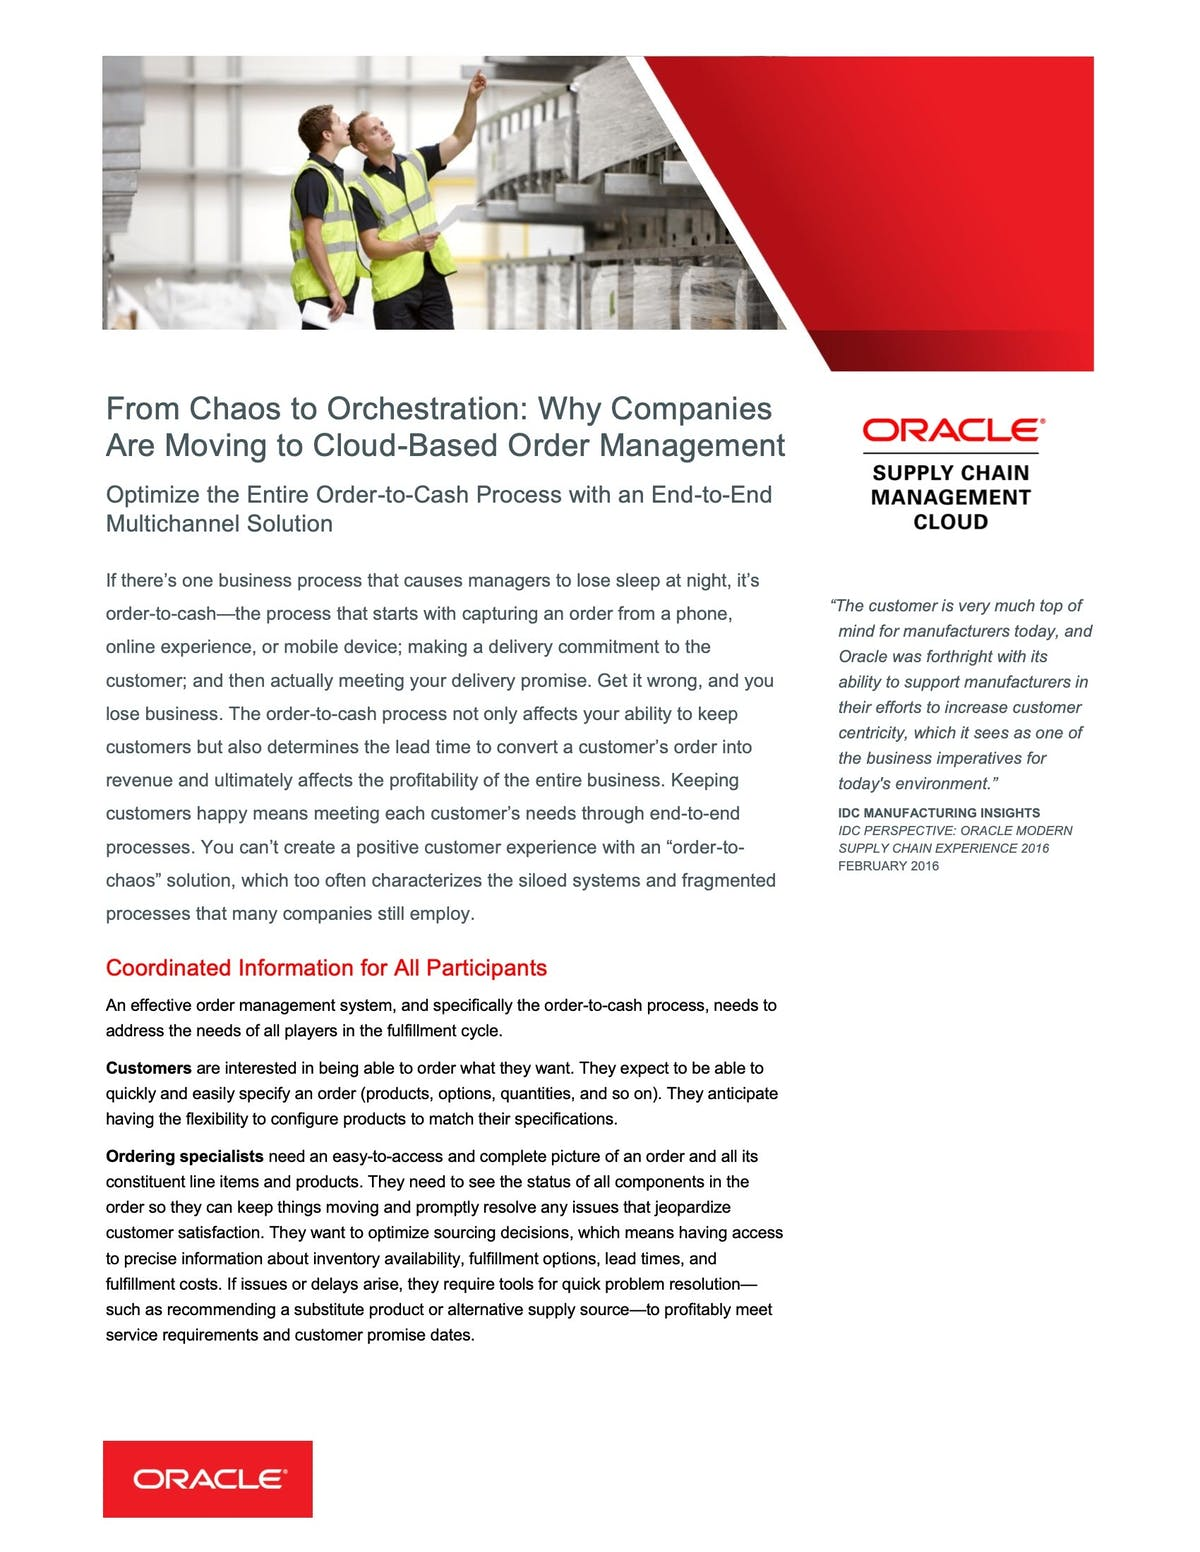 Oracle ERP Cloud Applications White Paper - From Chaos to Orchestration: Why Companies are Moving to Cloud-Based Order Management